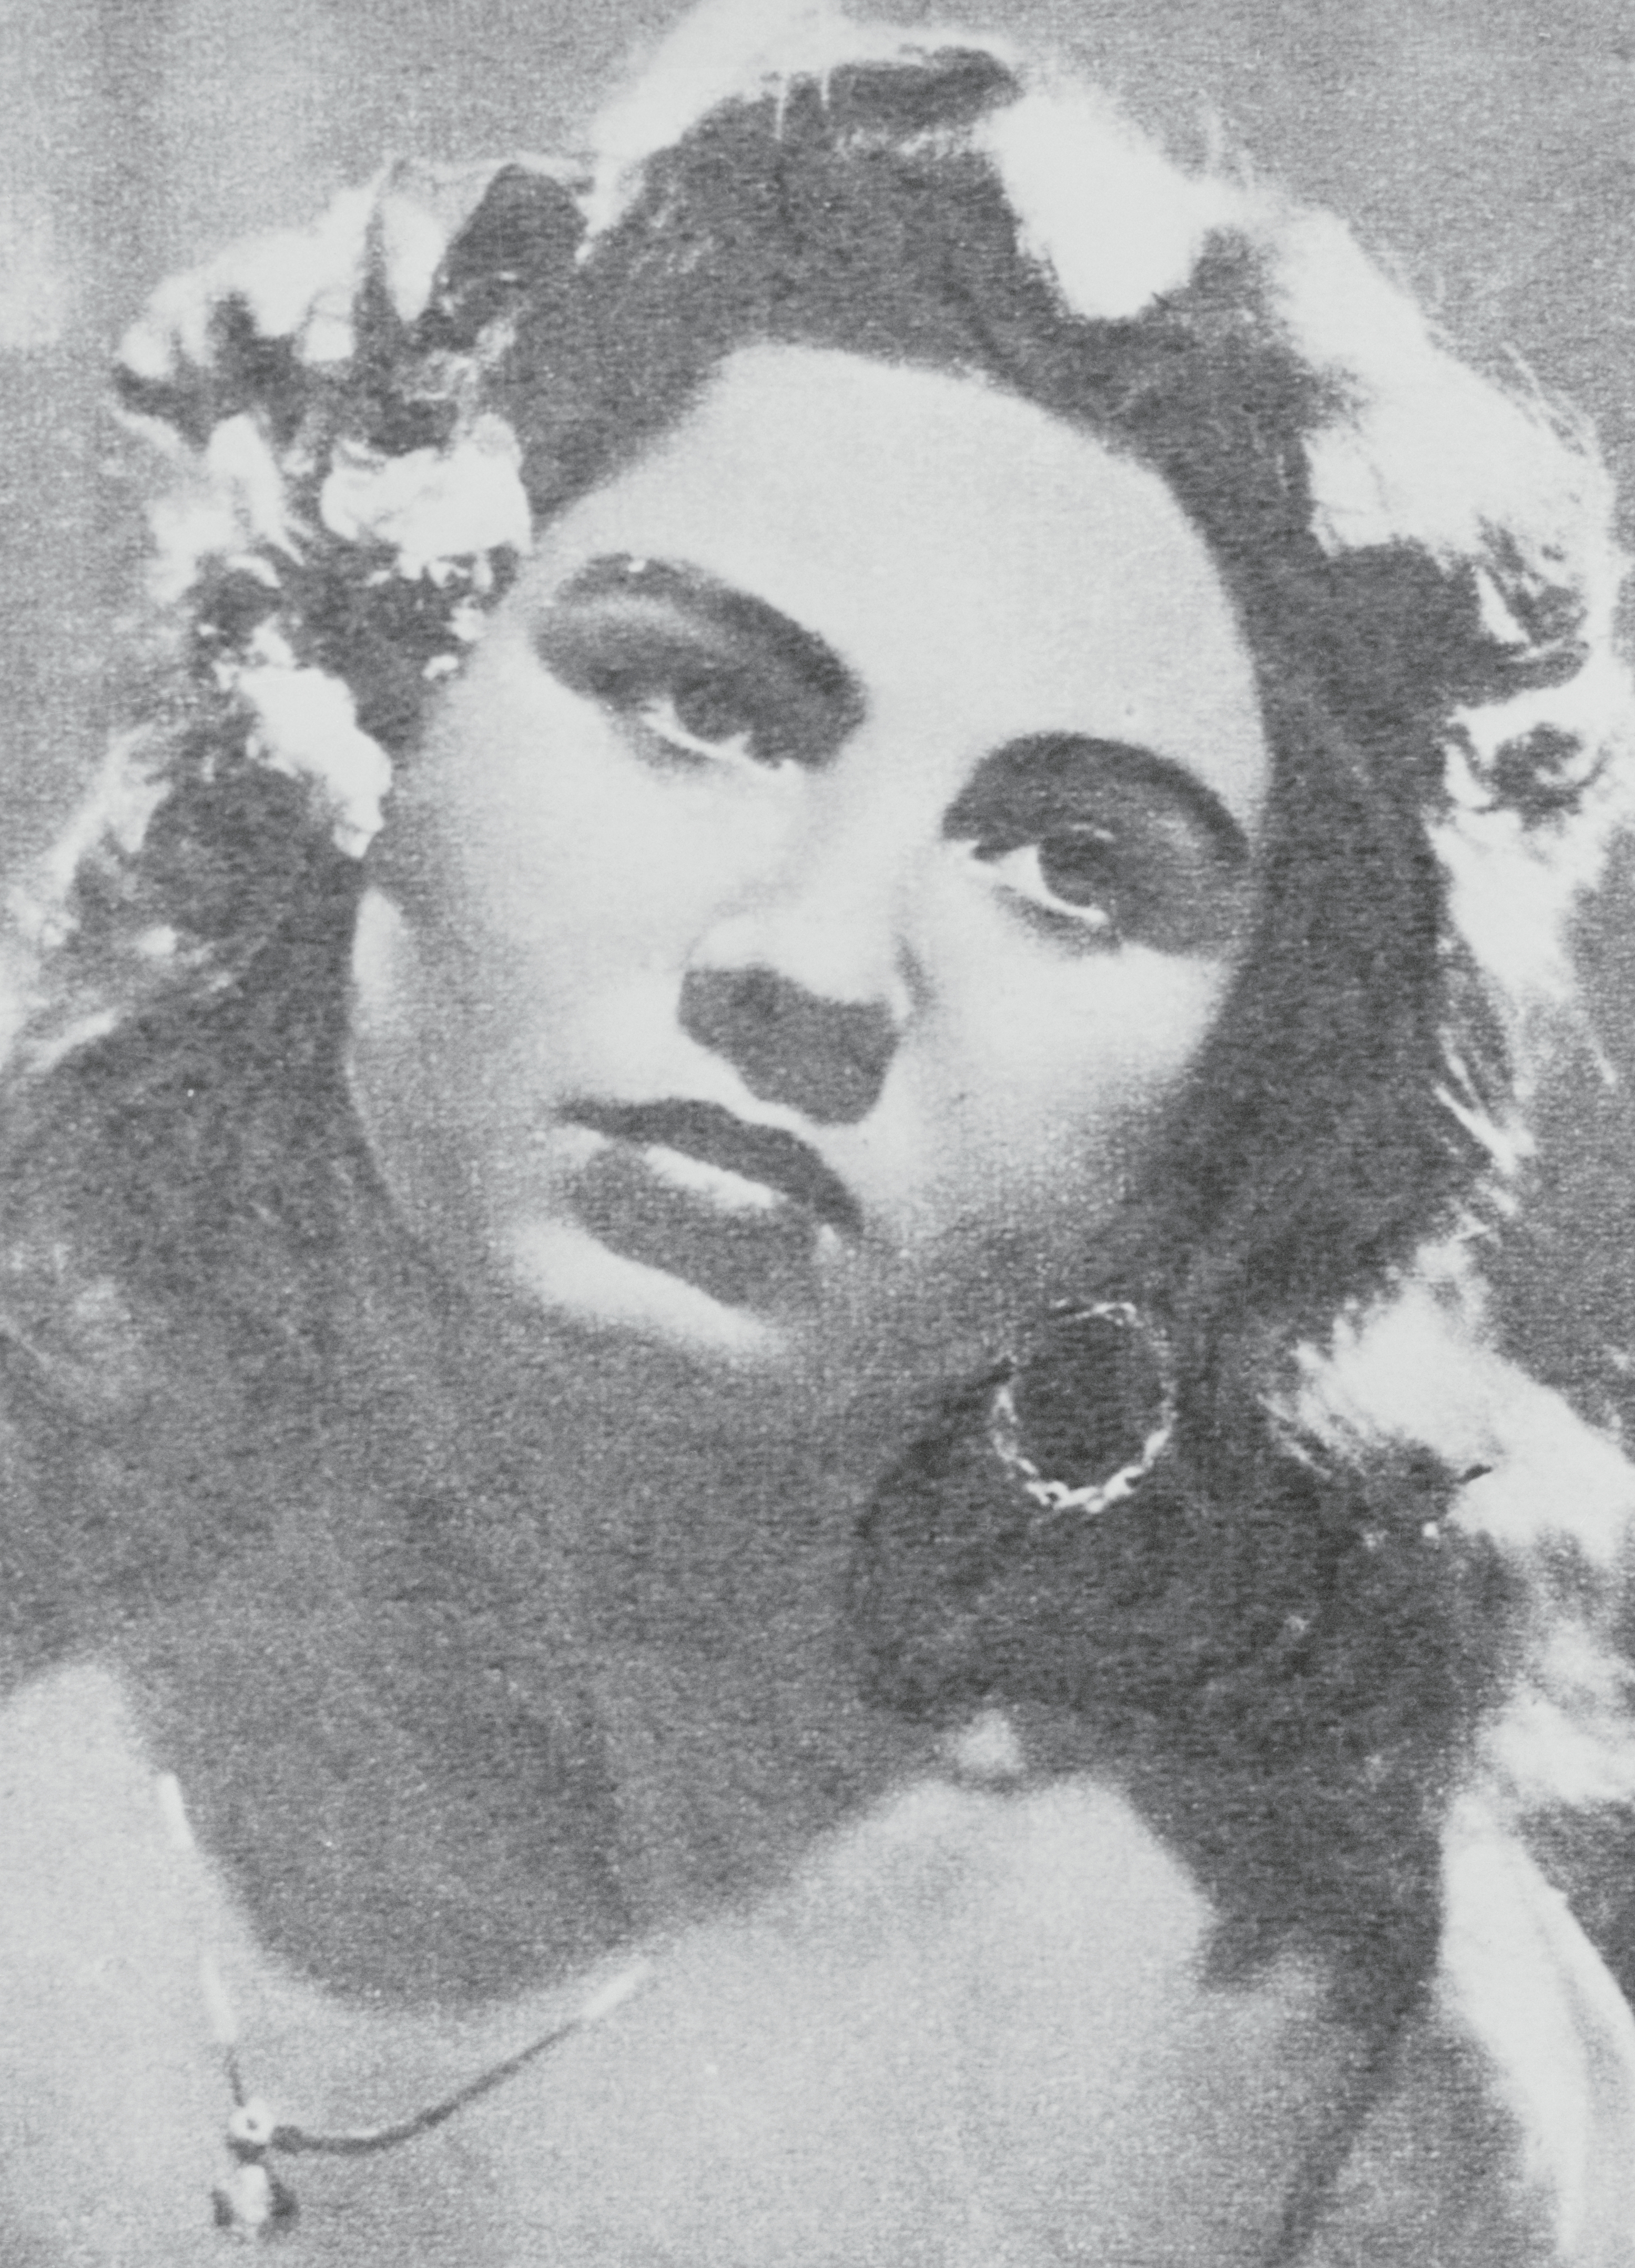 Wife of a camorristi, Assunta Maresca went on trial in 1959 for  cutting down Antonio Esposito, whom she believed responsible of the death of her husband, Pasquale Simonetti, killed  on mandate  by one of Esposito's gang men.